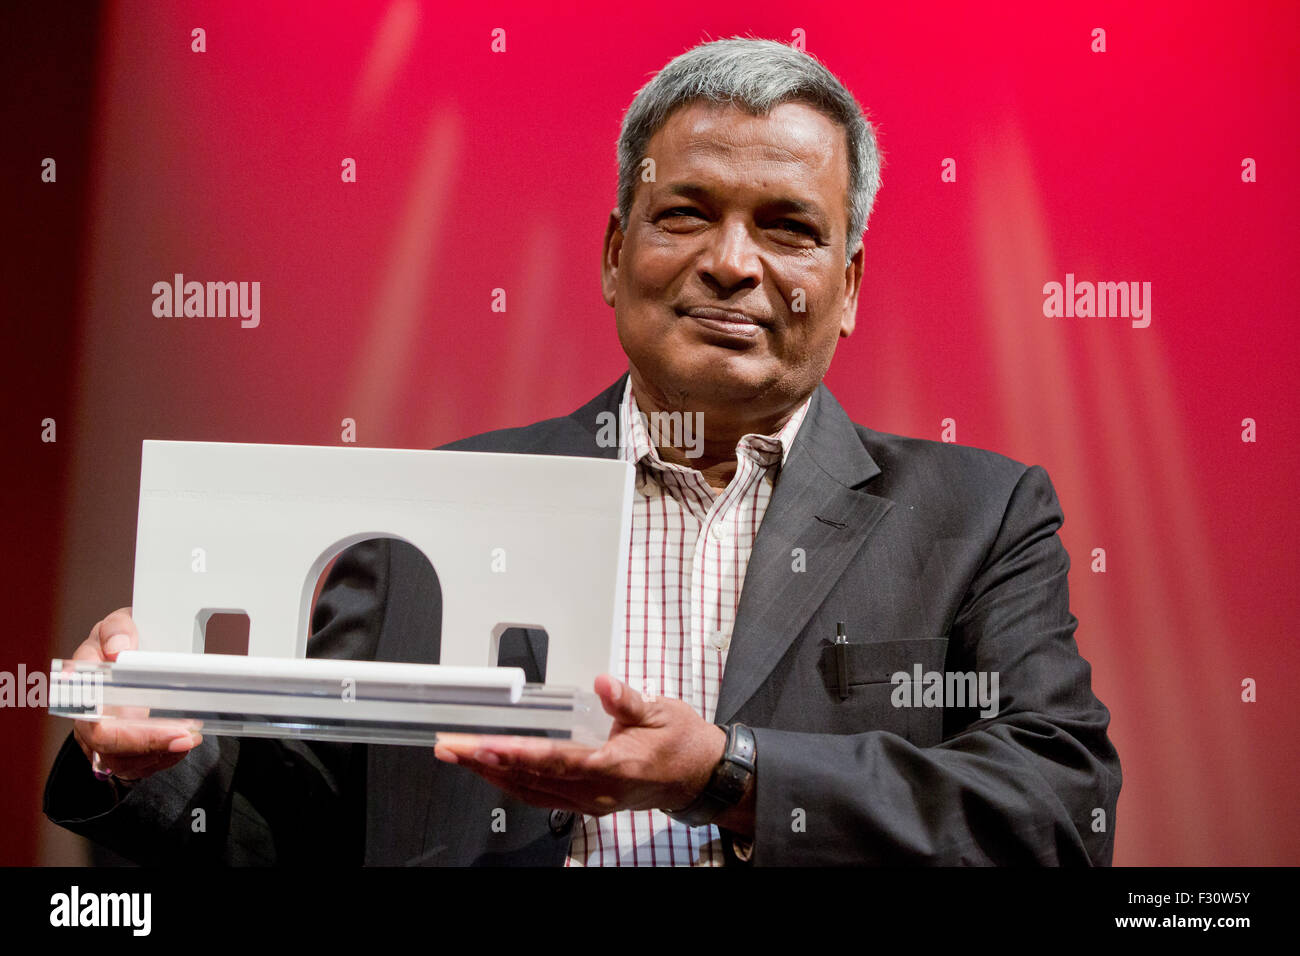 The president of the textile worker's union in Bangladesh, Amirul Haque Amin,  poses with a sculpture which - Stock Image